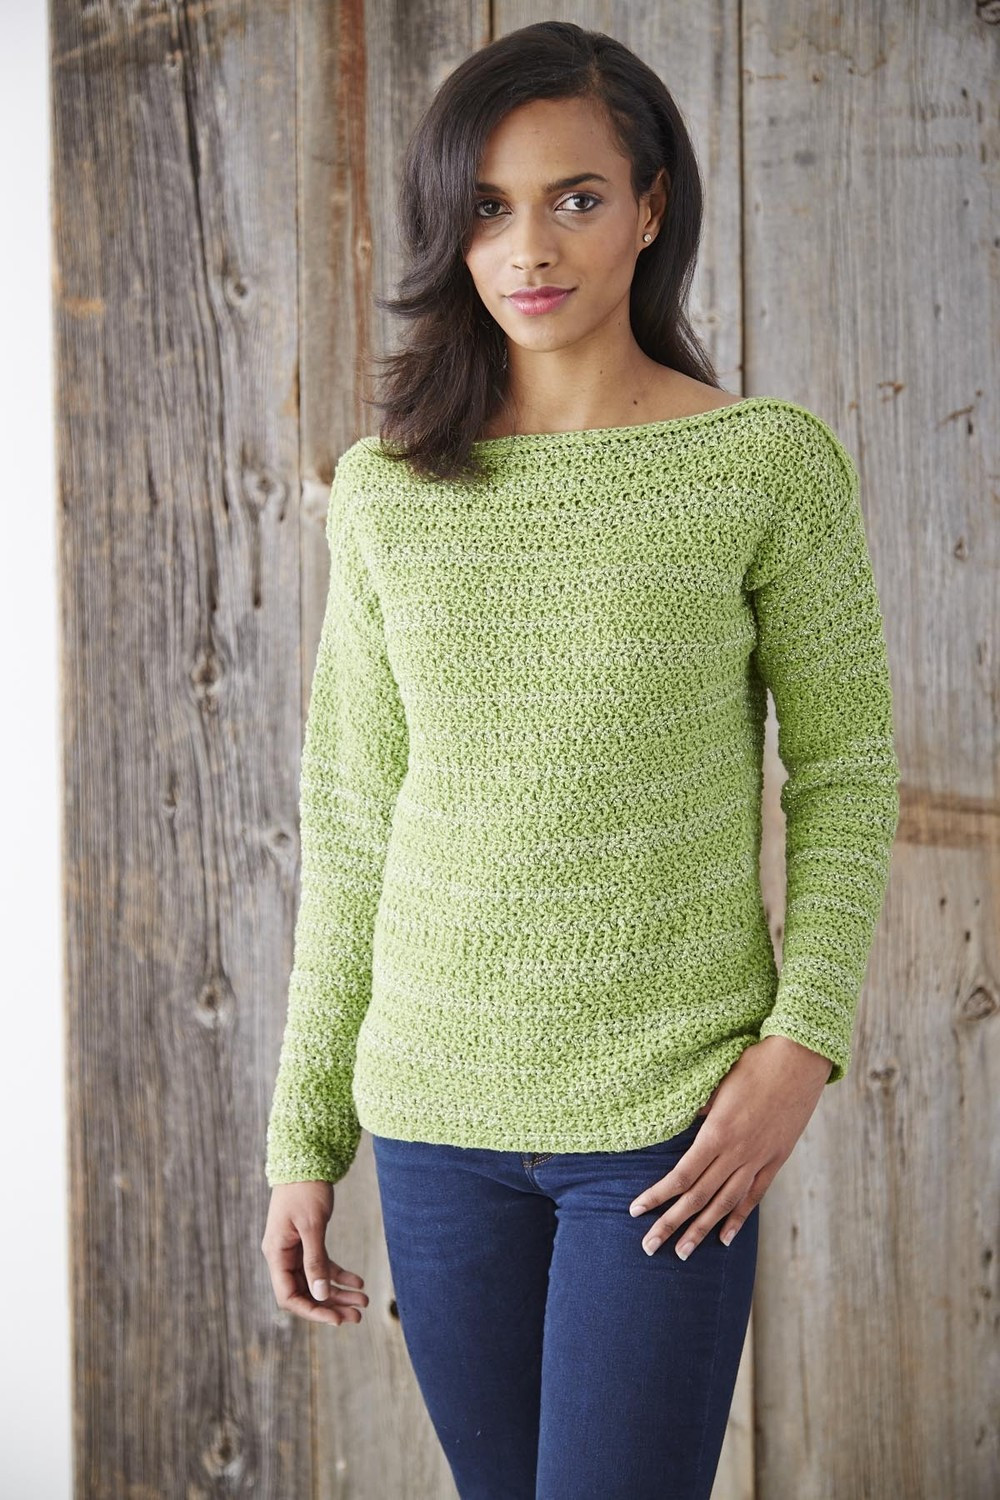 Sweater Crochet Patterns Best Of Boat Neck Pullover Sweater Of Amazing 49 Pictures Sweater Crochet Patterns